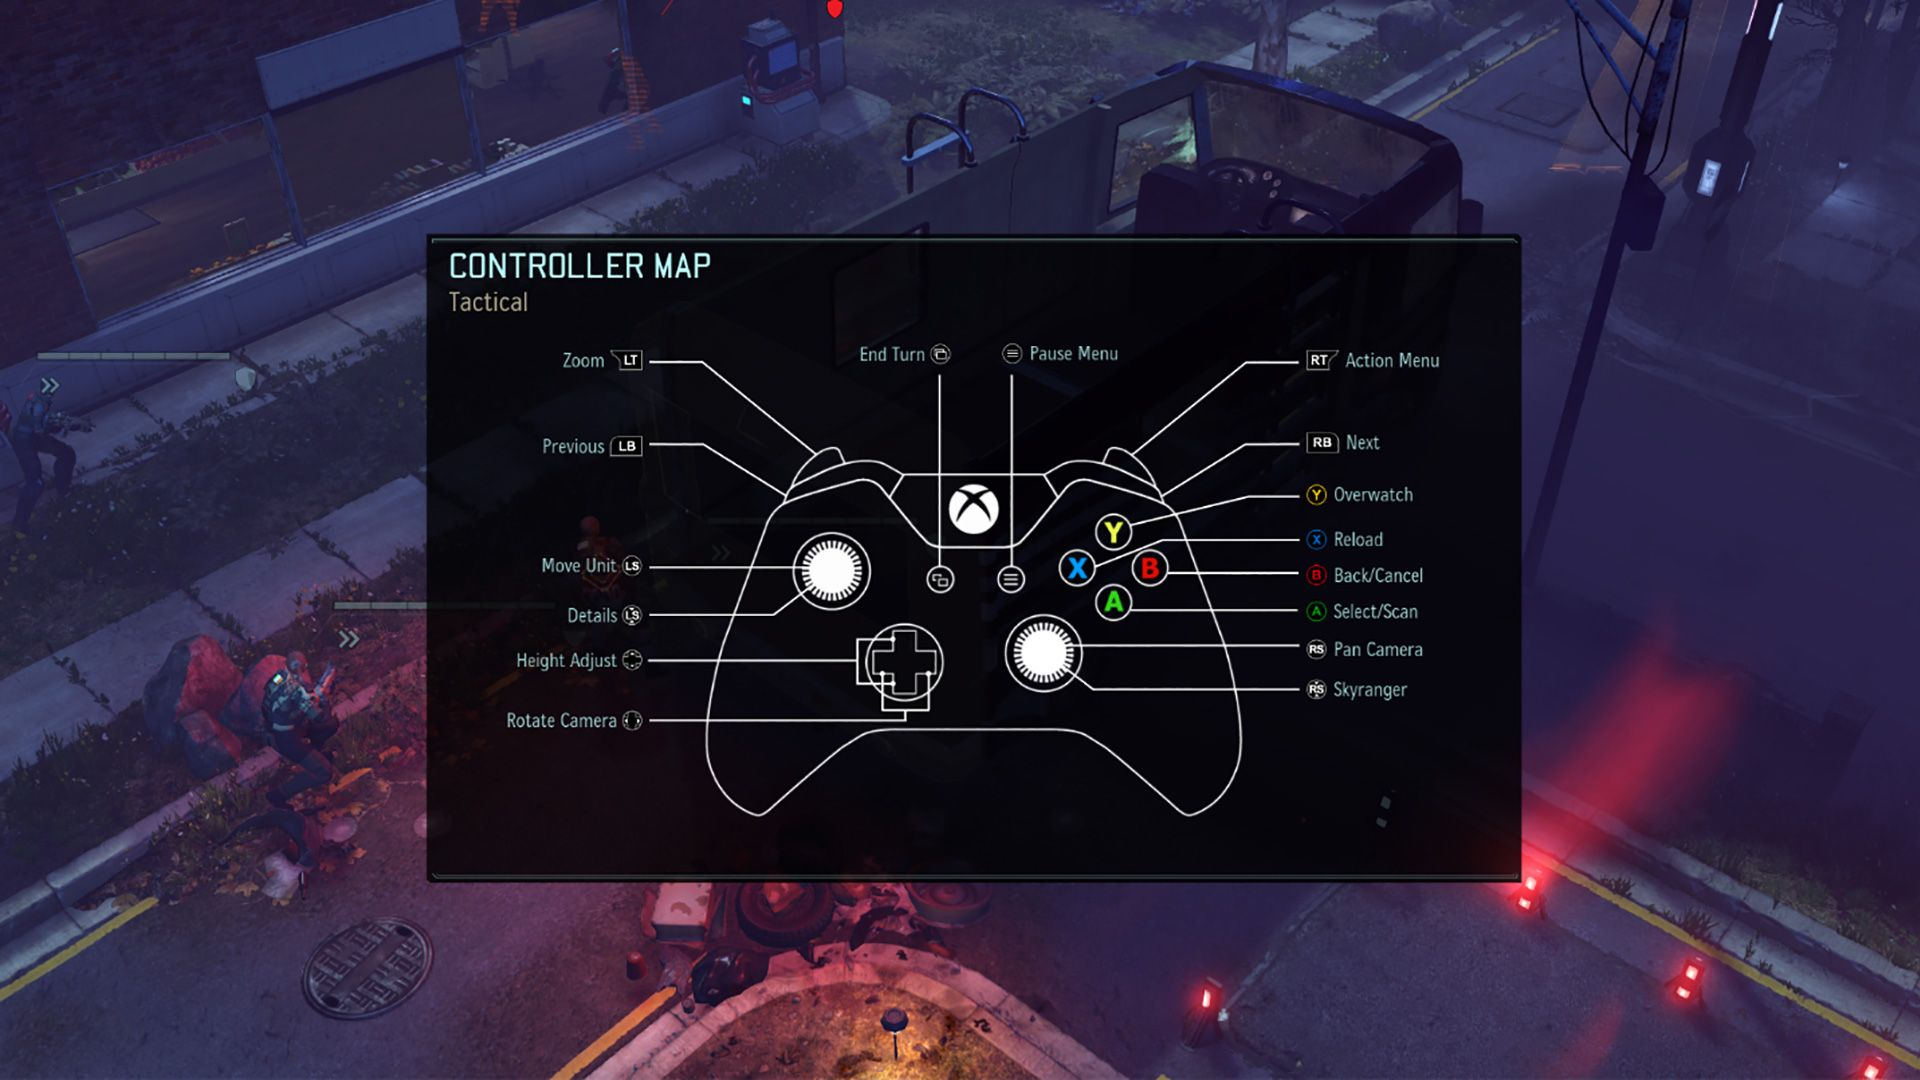 FR-Controller Support Deployed for XCOM 2 on P